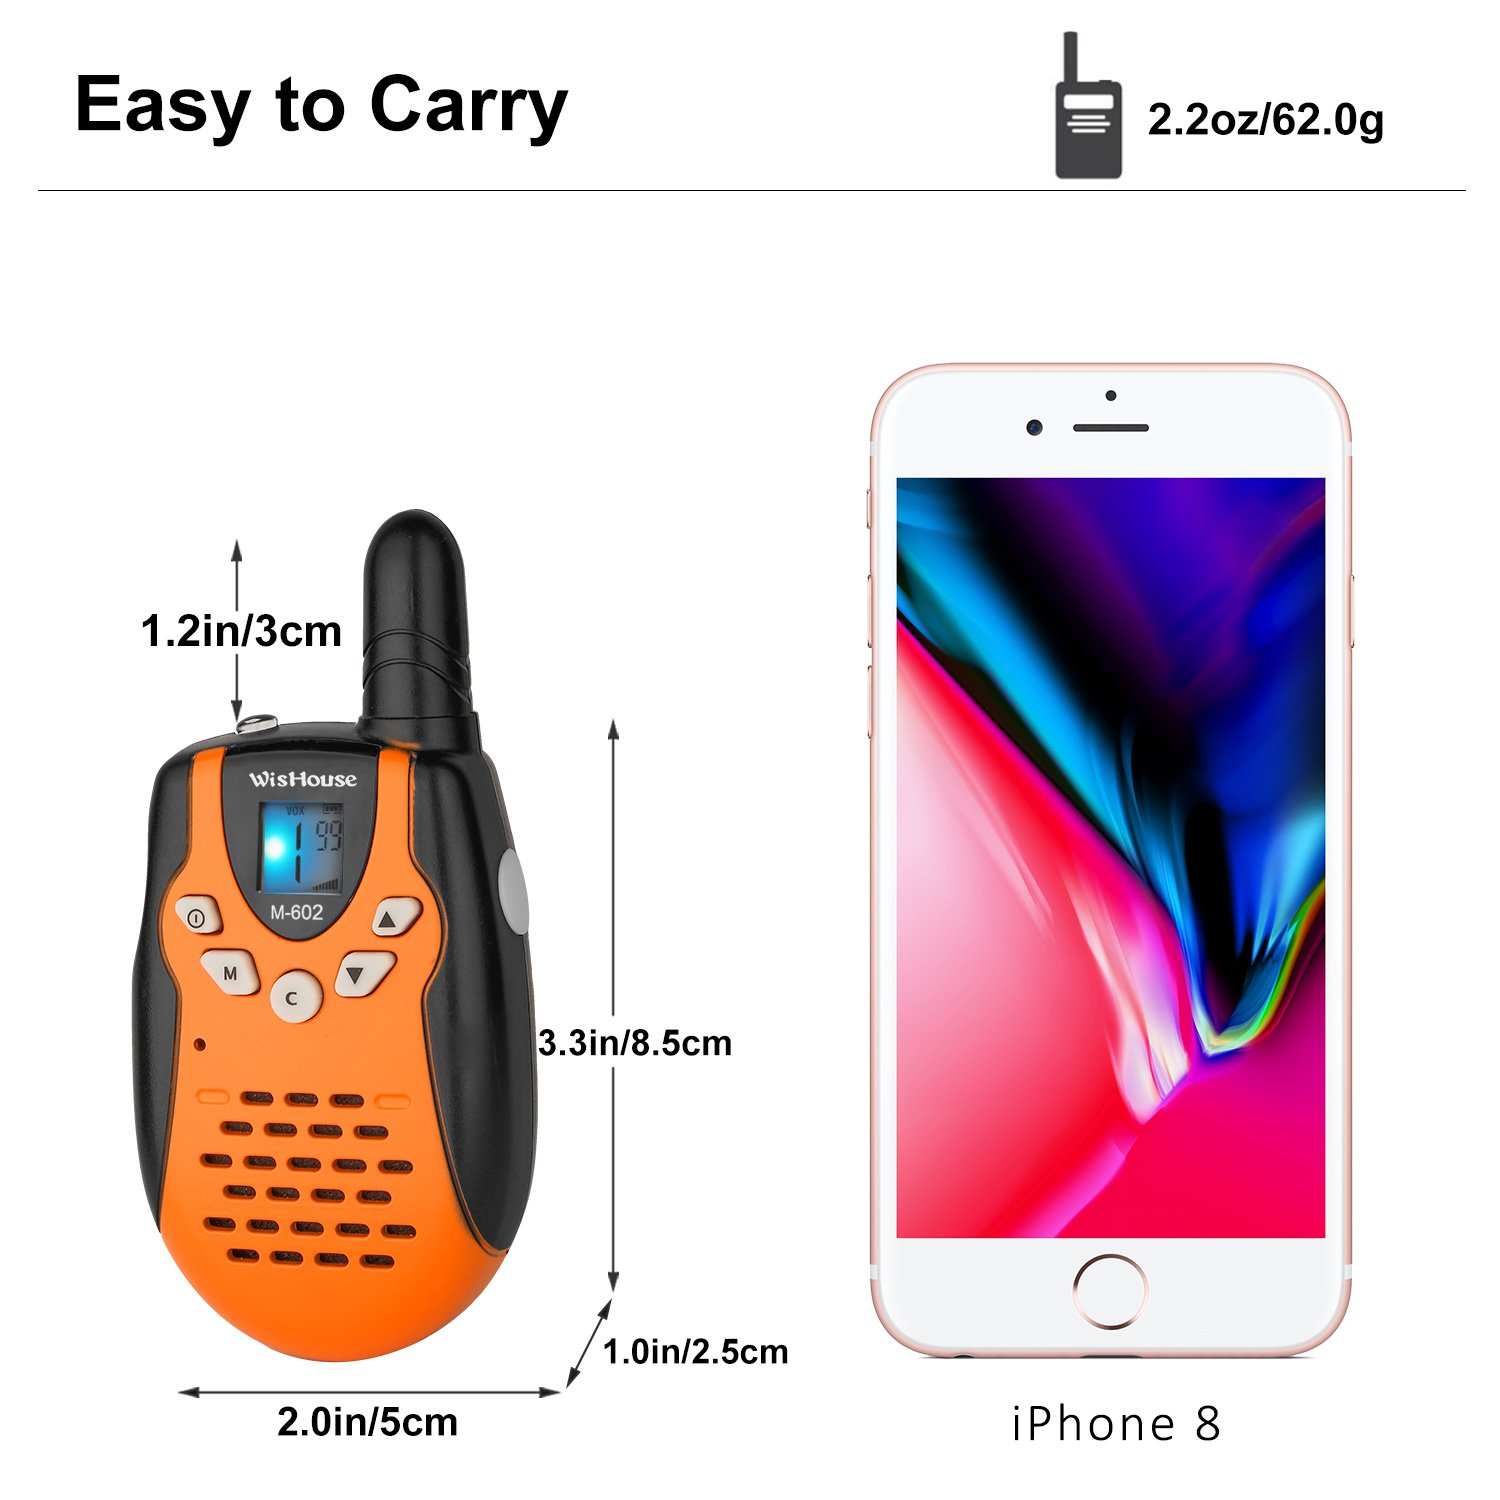 WisHouse Mini Durable Toy Walkie Talkies Kids Boys Girls Flashlight as Festival Gifts/Long Range Childrens 2 Way Radio Walky Talky Sets Camping Hiking (M602 Orange 4 Pack) by Wishouse (Image #5)